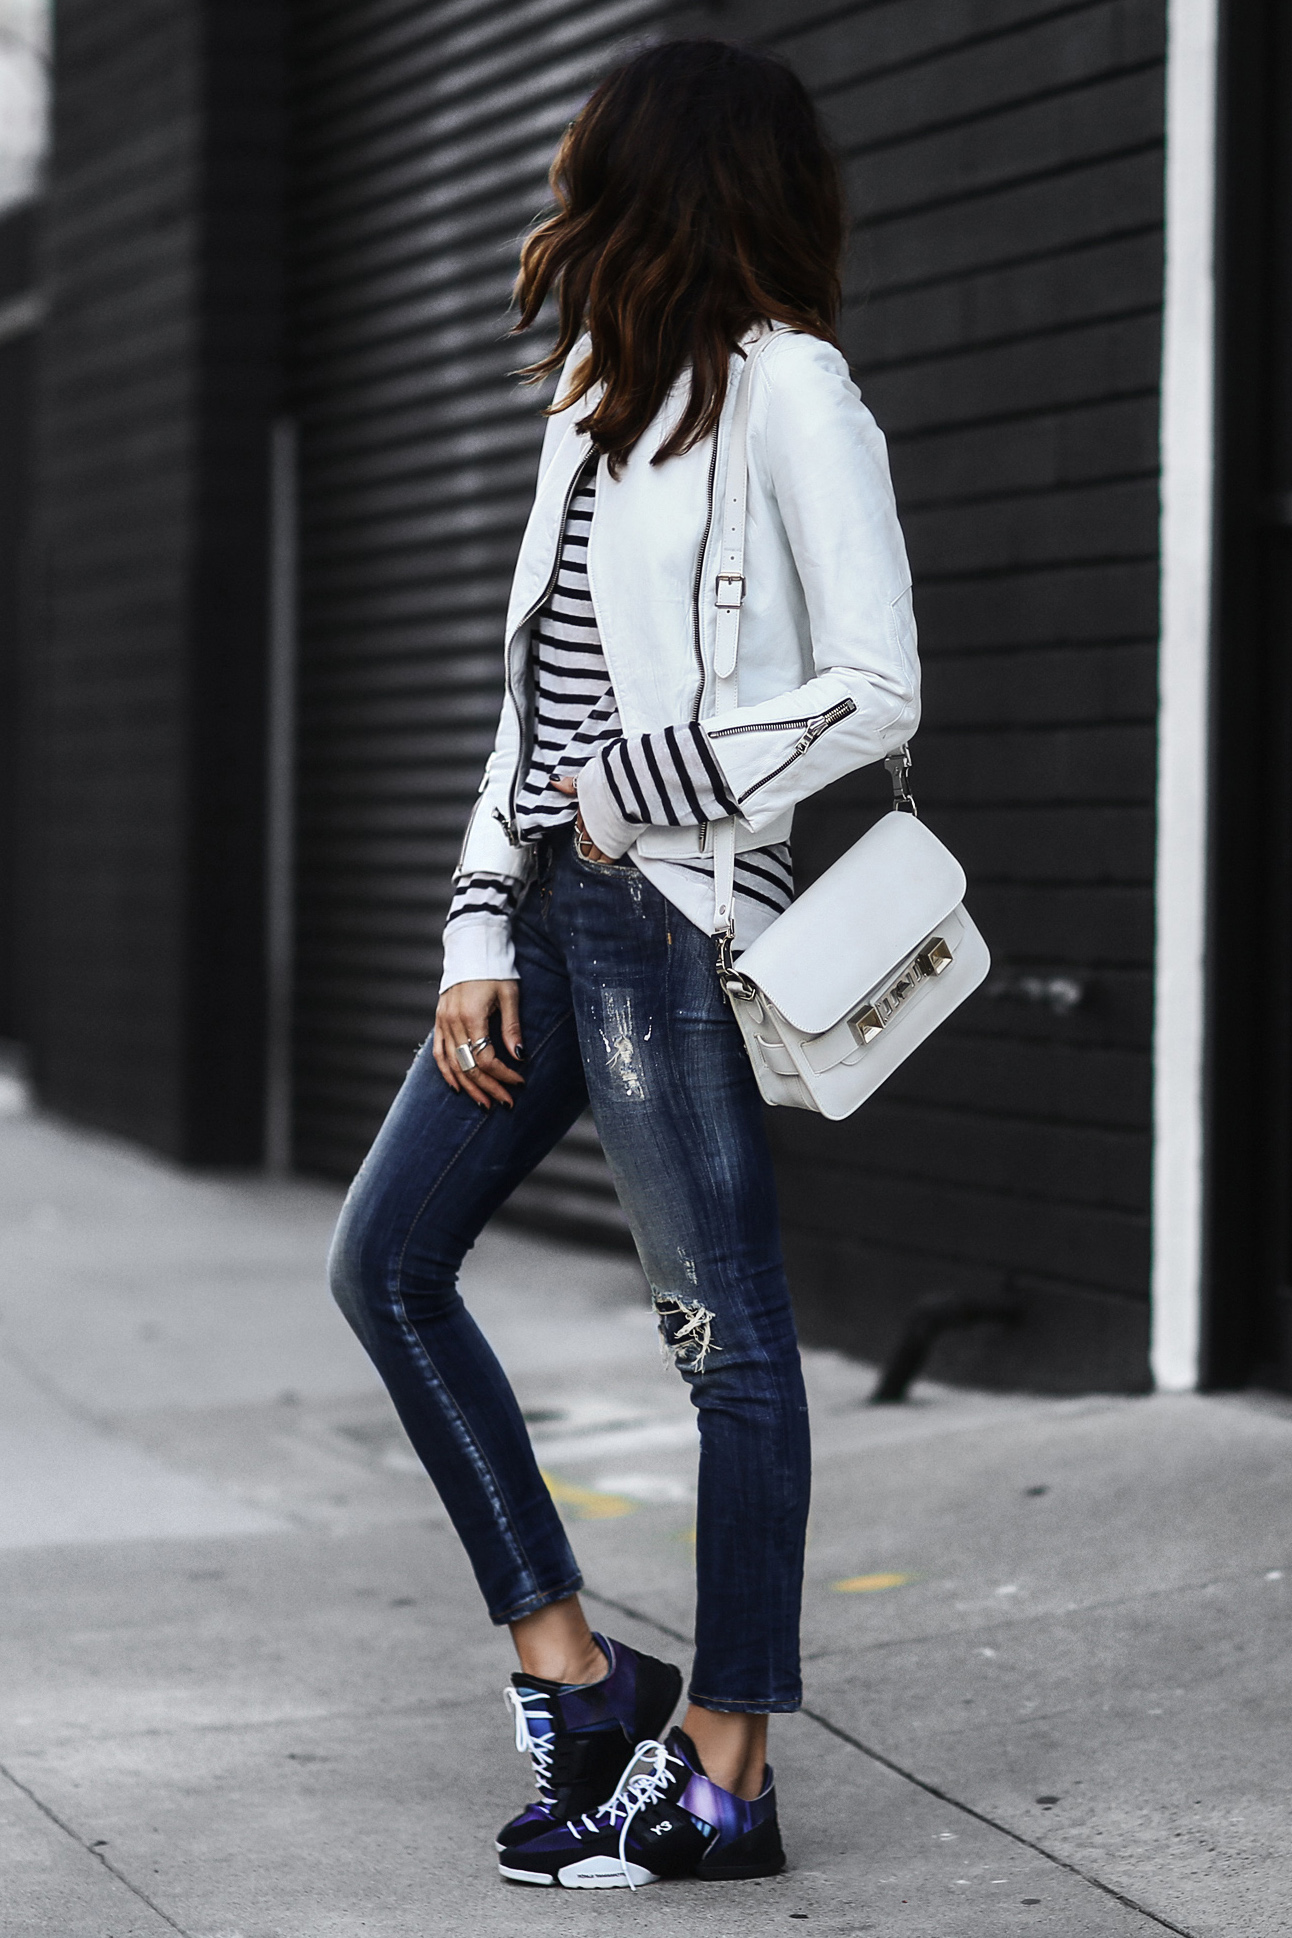 adidas sneakers, ripped skinny jeans, white leather jacket, striped shirt